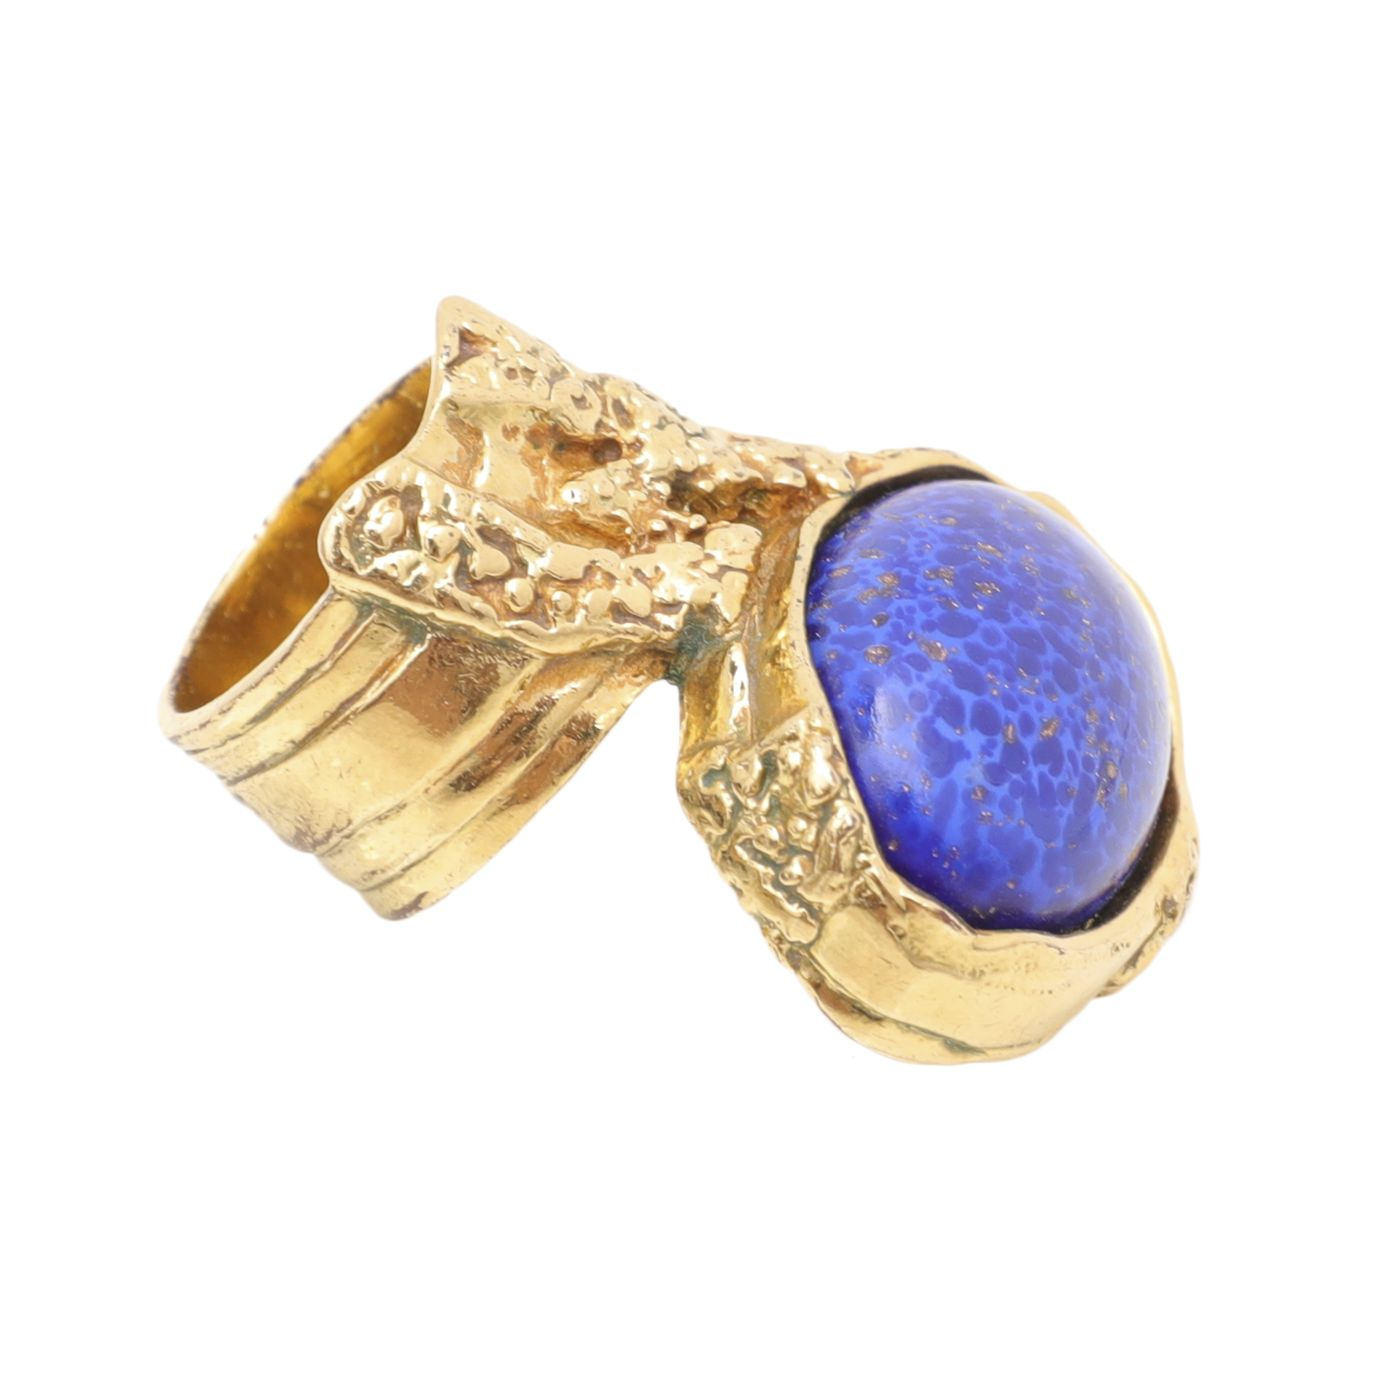 YSL Blue Arty Stone Ring 9